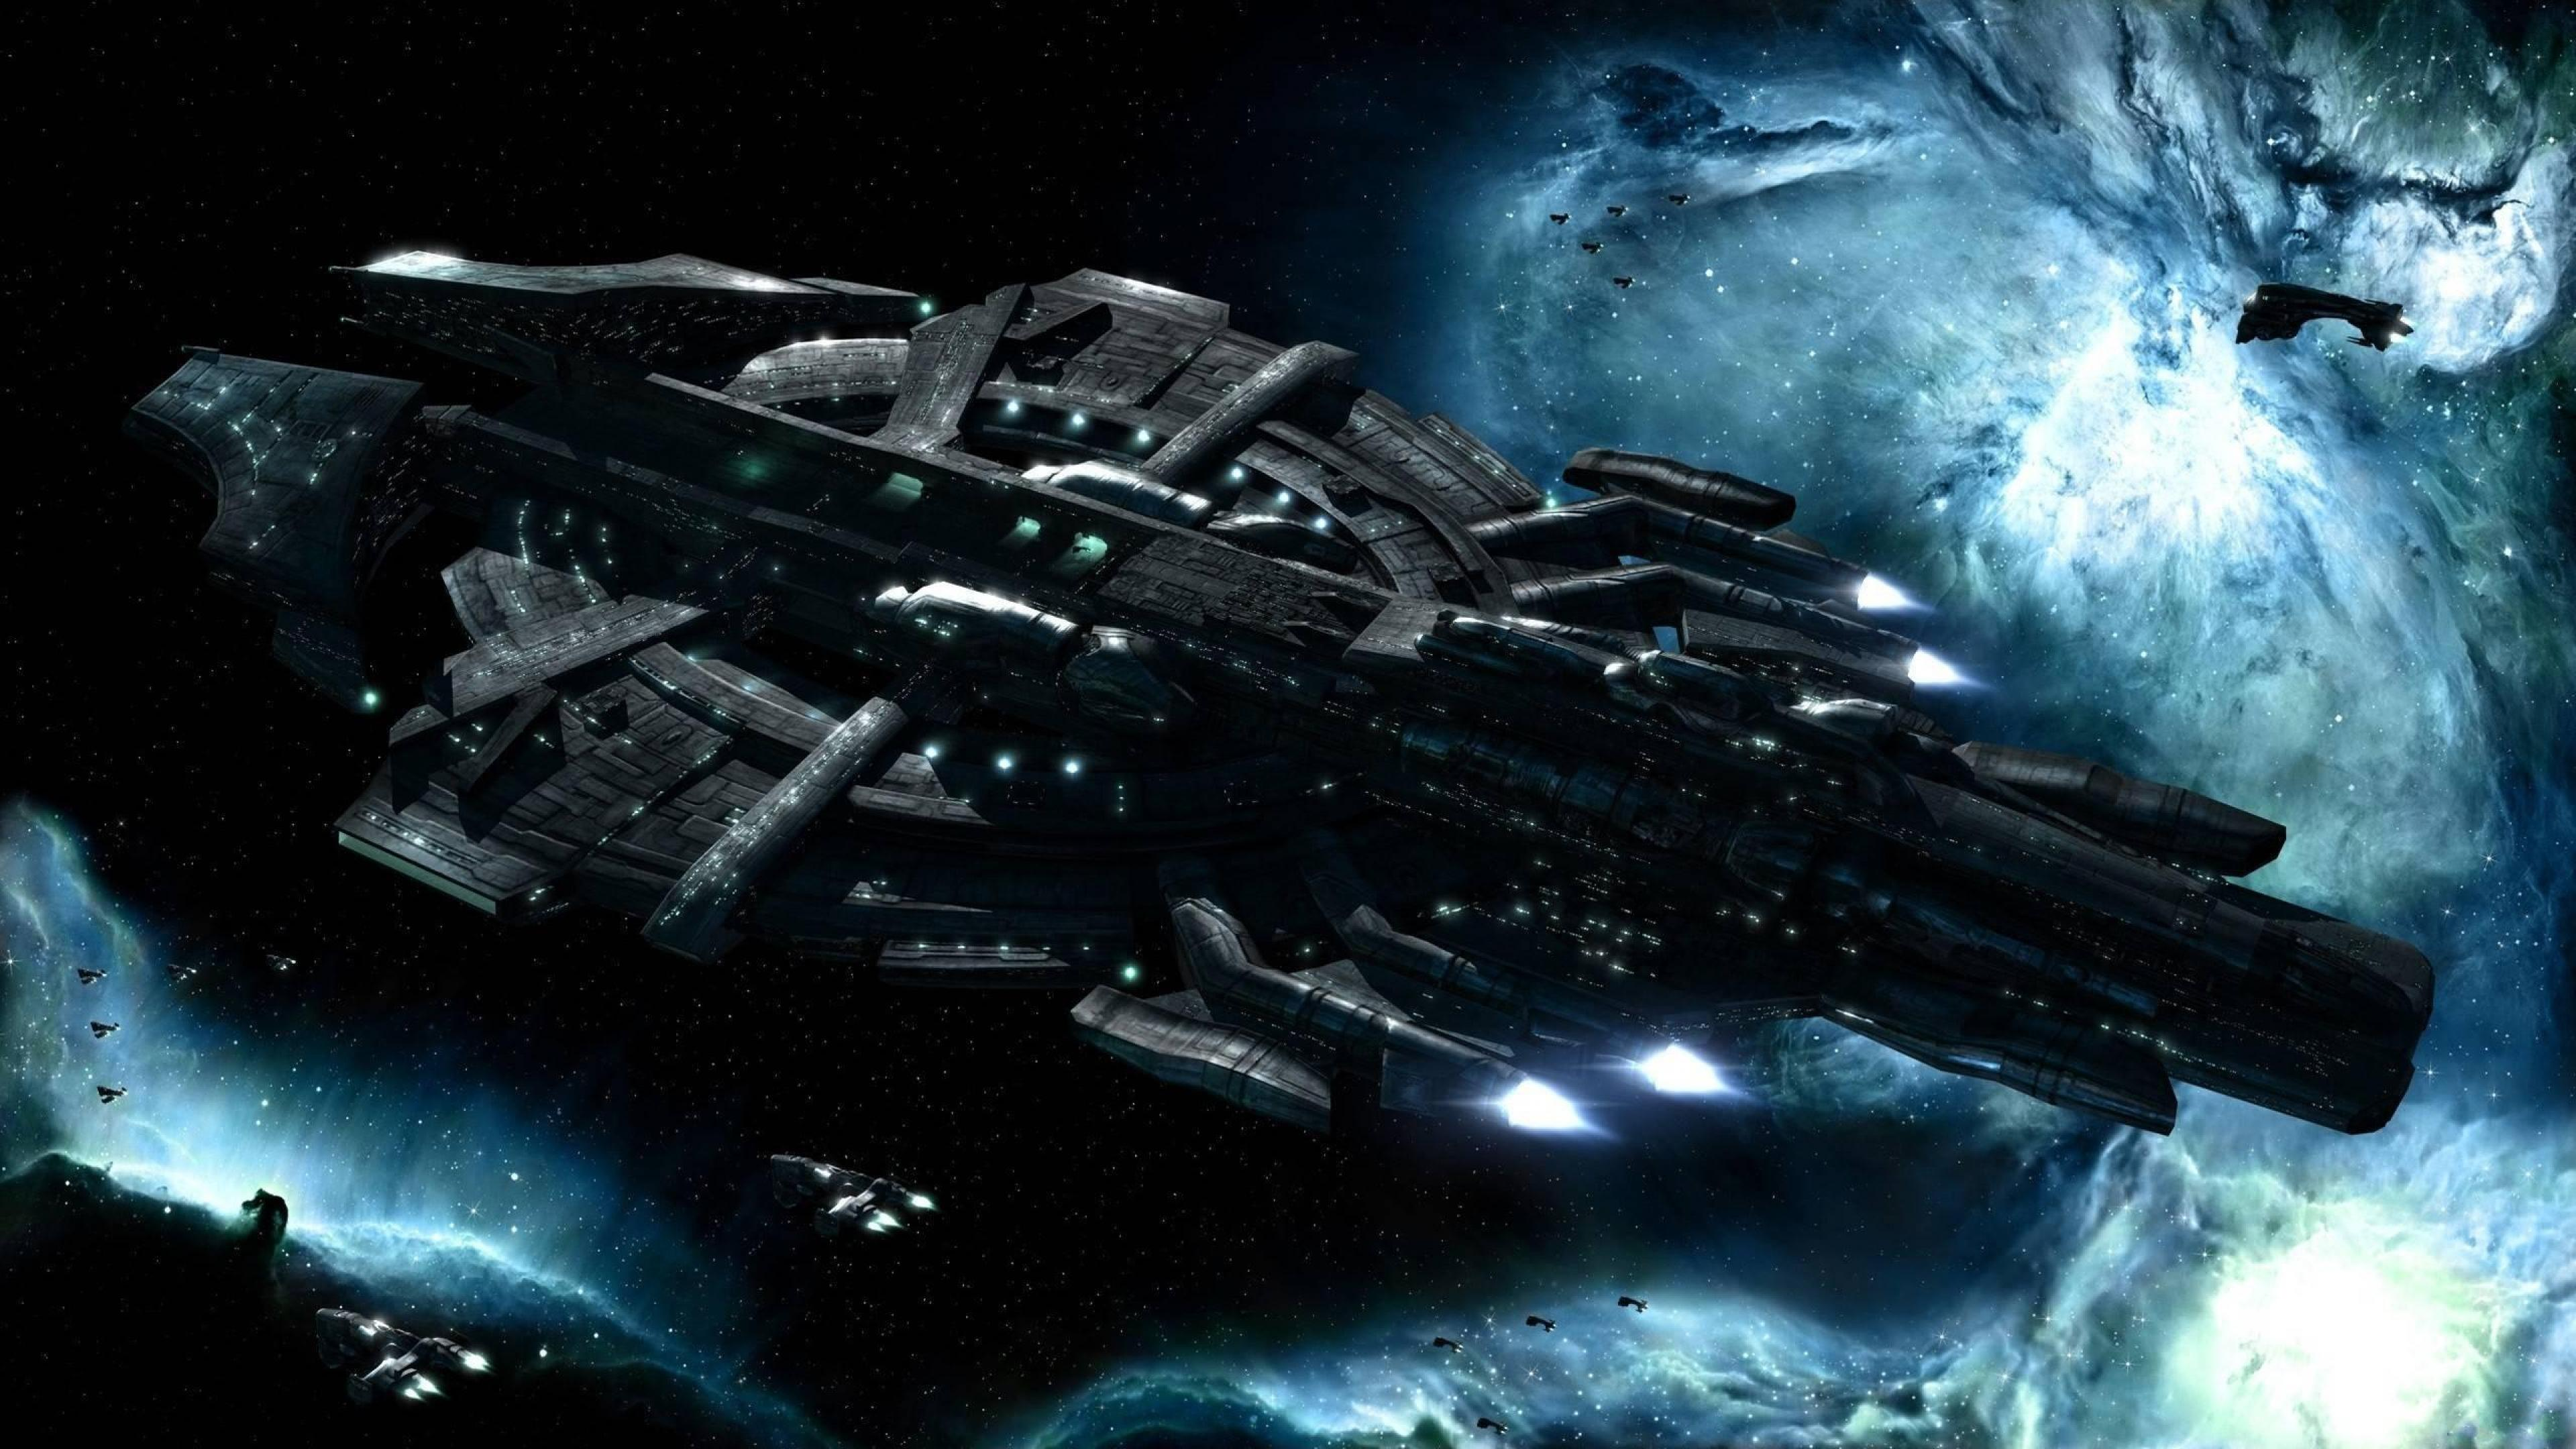 Spaceship Size 3840x2160 Wallpapers Top Free Spaceship Size 3840x2160 Backgrounds Wallpaperaccess